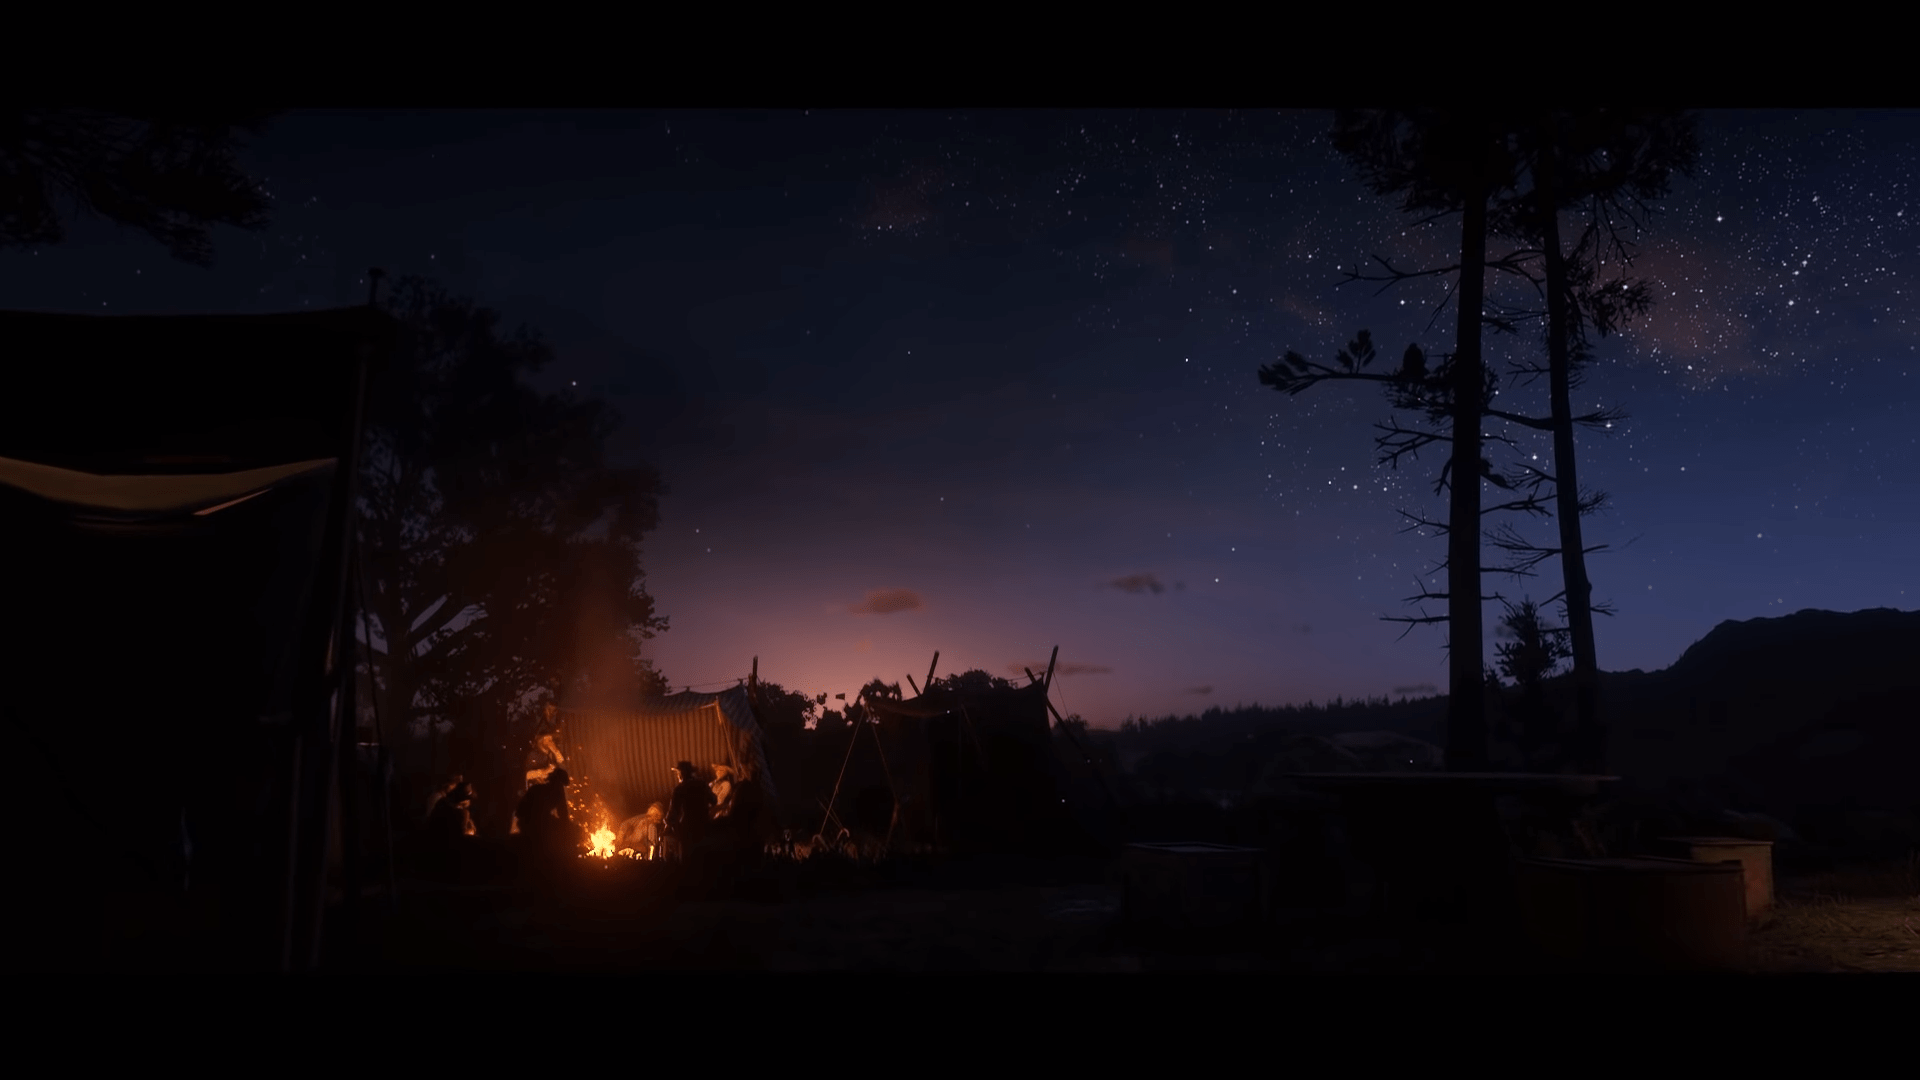 NexusMods Announces Winners Of The Red Dead Redemption 2 PC Screenshot Contest